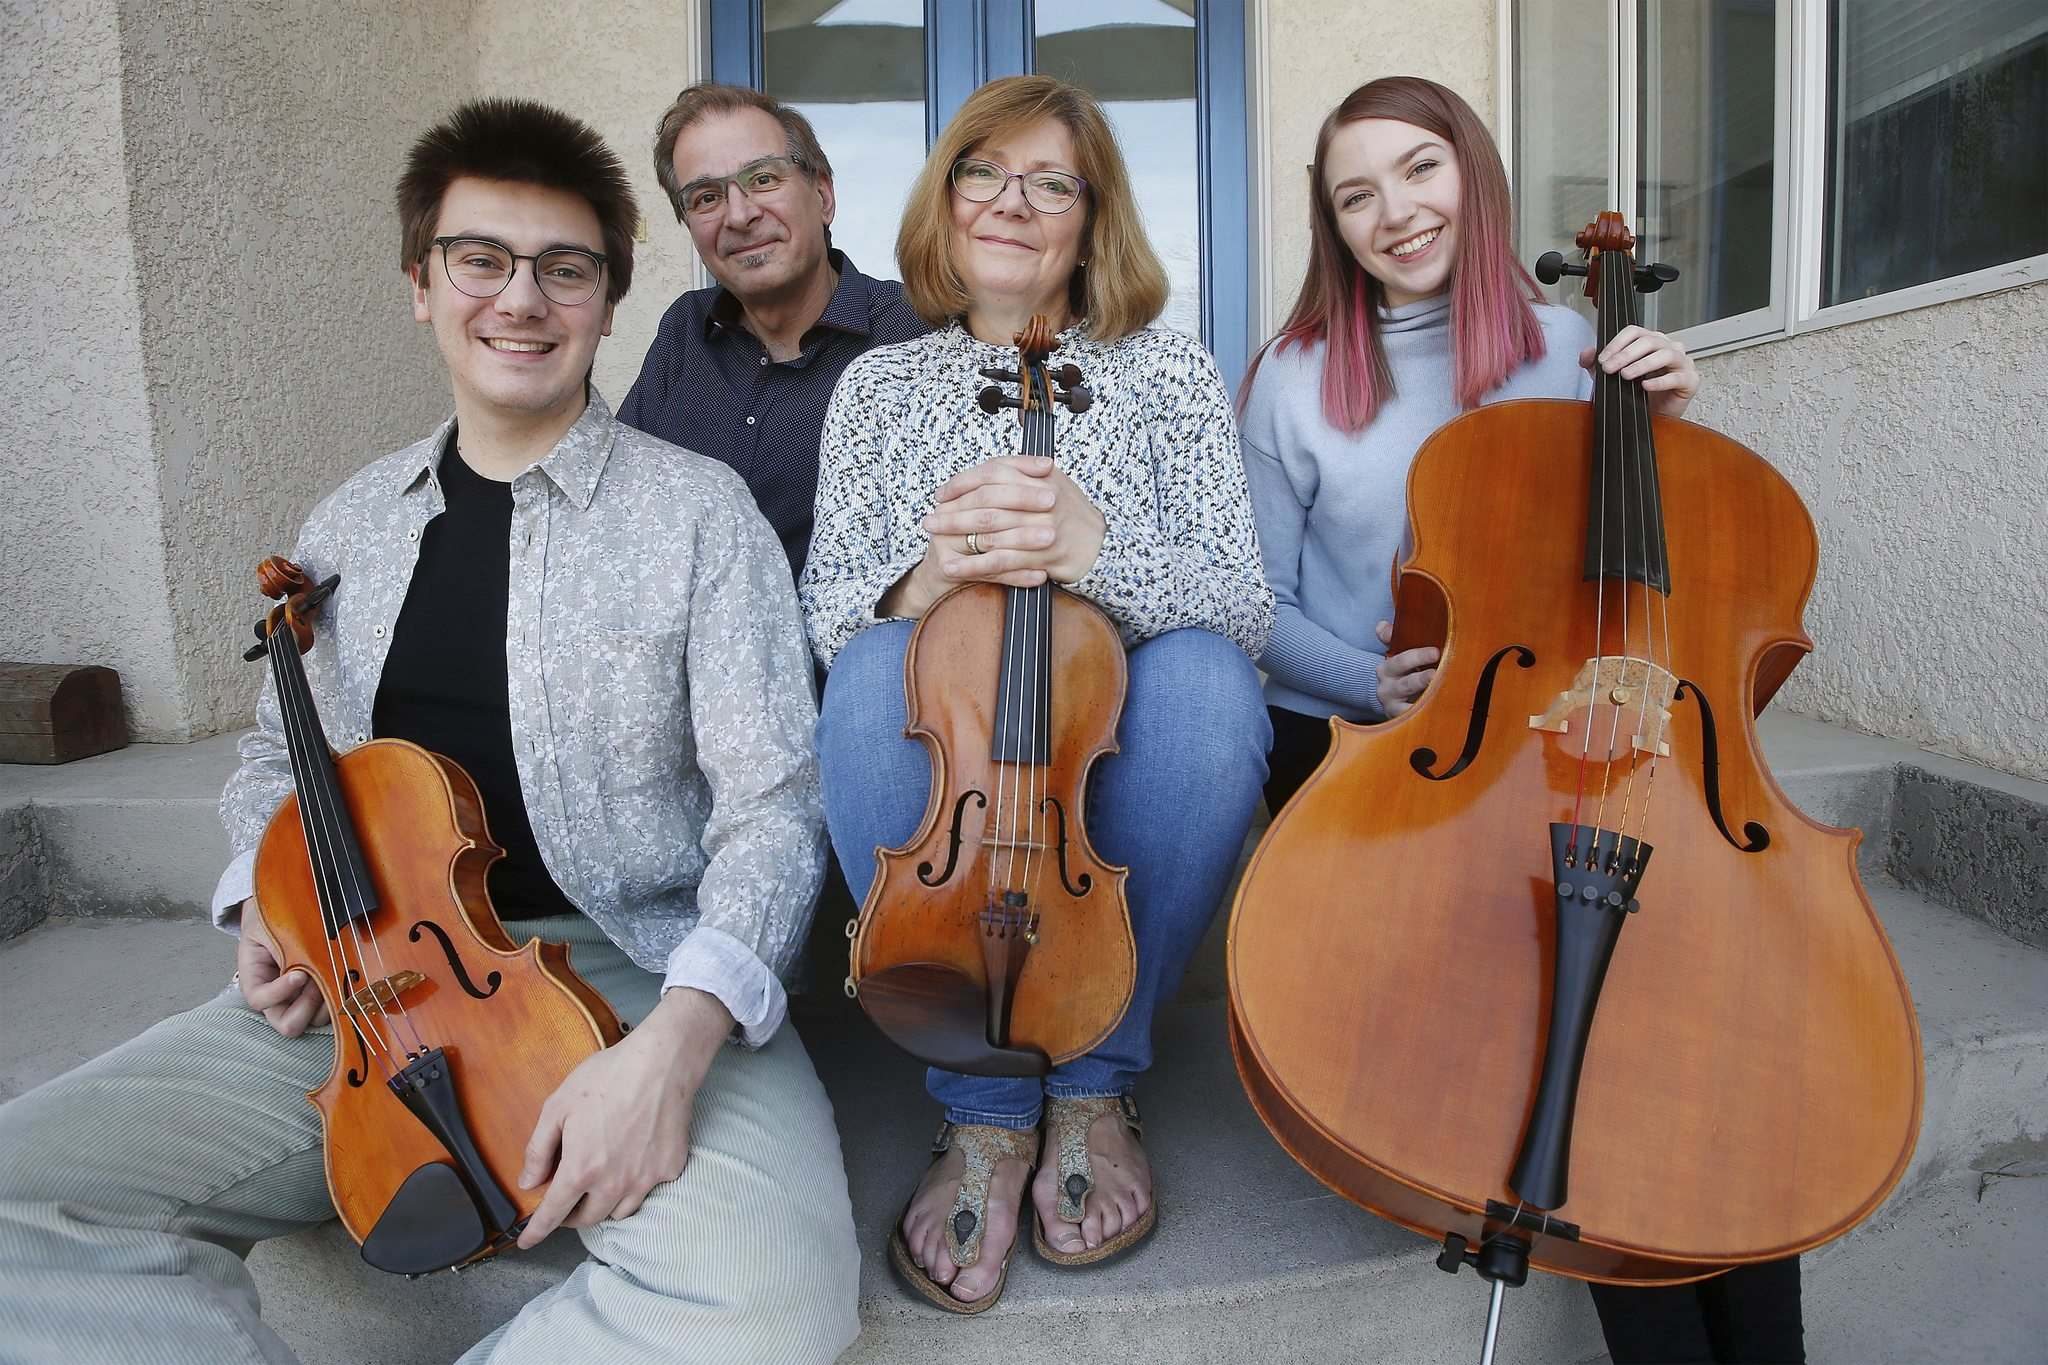 Gwen Hoebig, concertmaster of the WSO, and David Moroz, piano professor at the U of M, with their children Juliana (right) and Sasha.